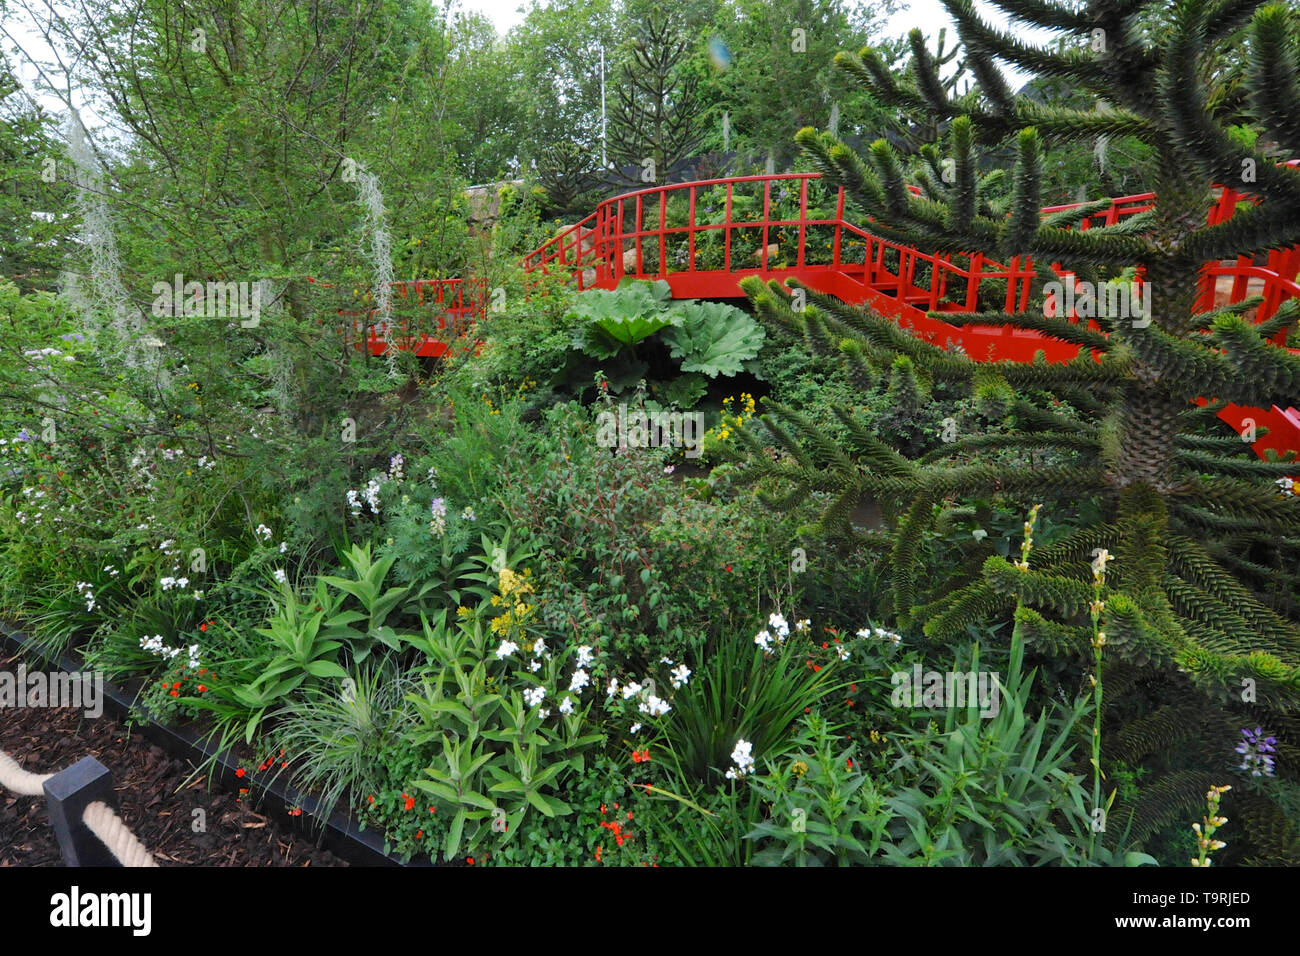 The Trailfinders Undiscovered Latin America Garden (designed by Jonathan Snow), one of the eleven beautiful and elegant show gardens on display at the 2019 RHS Chelsea Flower Show which opened today in the 11-acre grounds of the Royal Hospital Chelsea, London, United Kingdom - 20 May 2019  The garden is inspired by the temperate rainforests of South America which are little known in the UK but are home to a surprising number of well-known UK garden plants.  There are 26 themed gardens on display at this year's show as well as over 100 plant displays in the Great Pavilion. New plants are often  Stock Photo